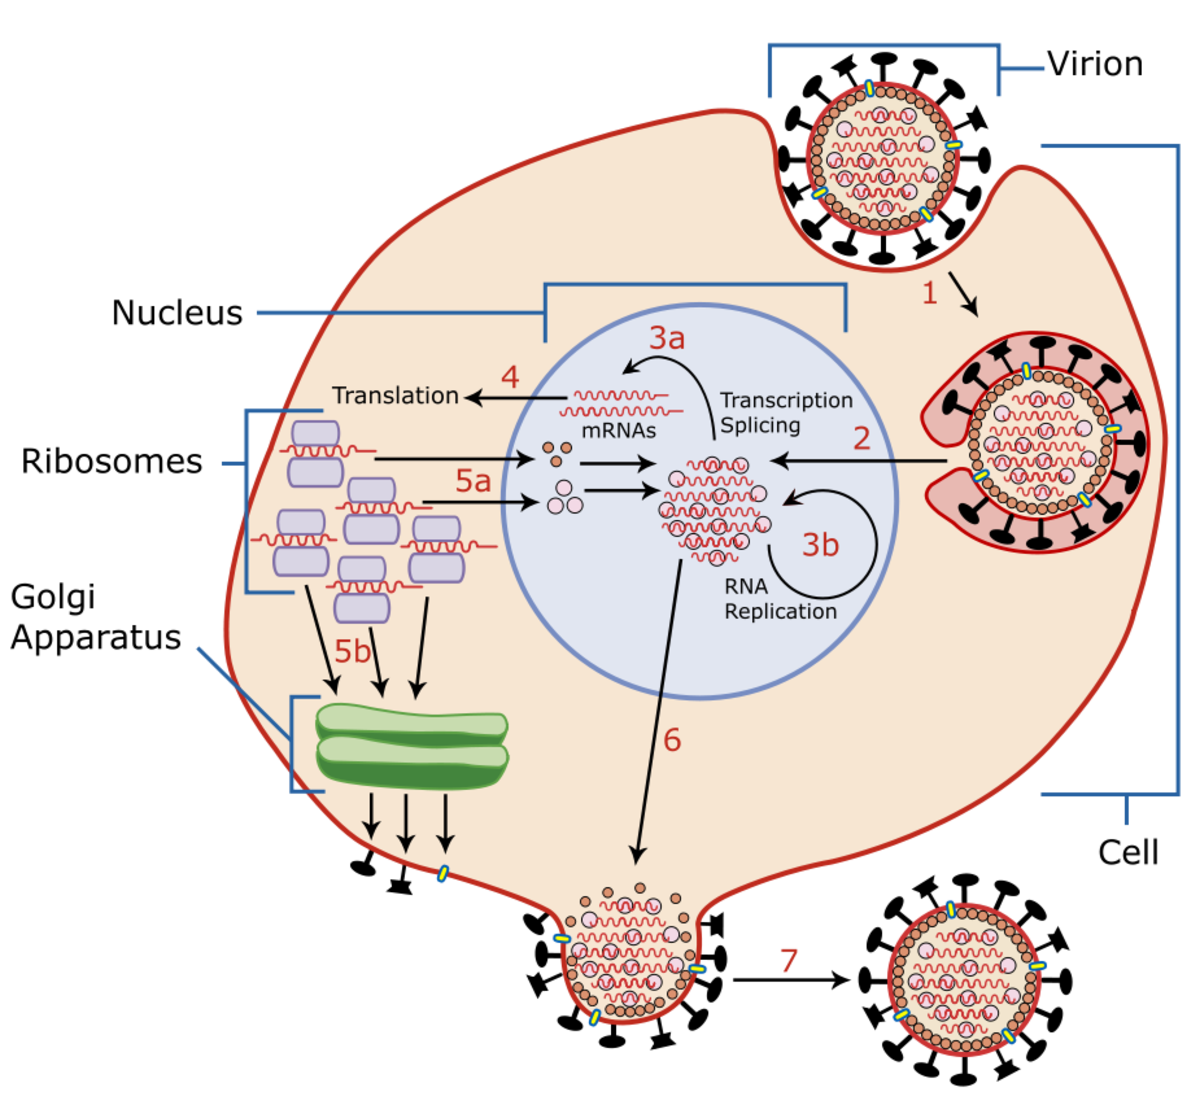 Influenza viral cell invasion and replication